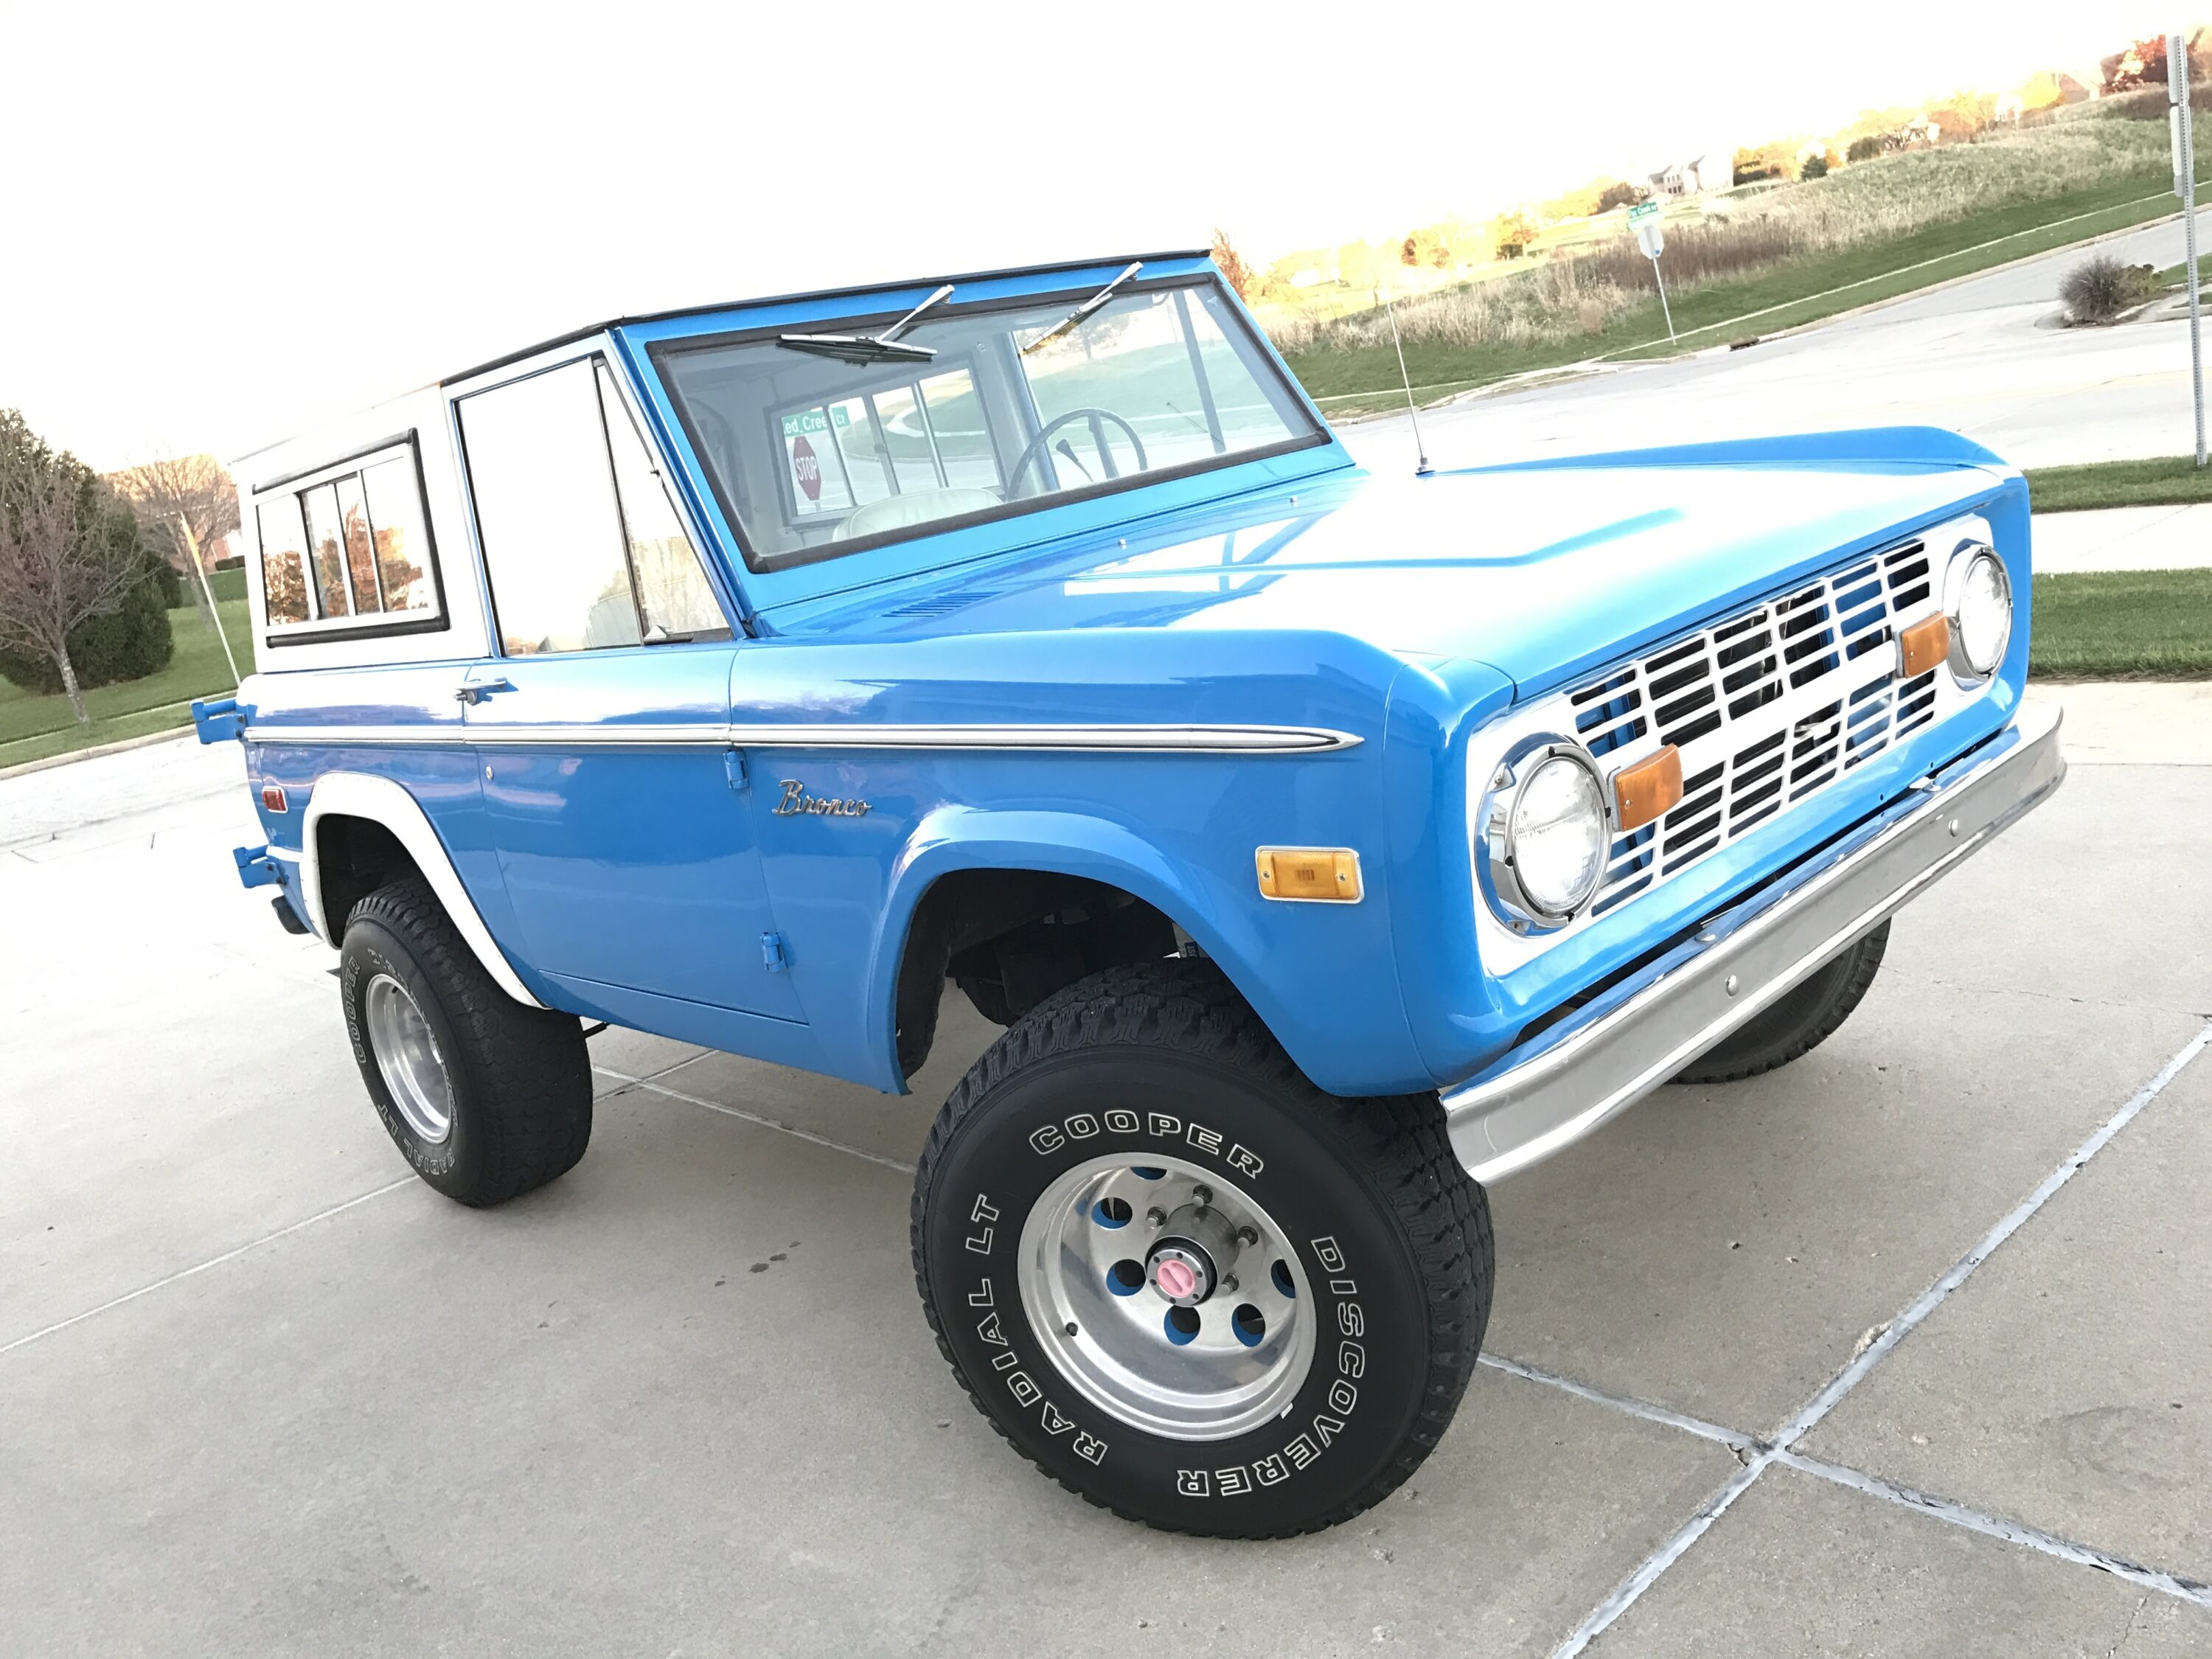 1975 Ford Bronco | Maxlider Brothers Customs